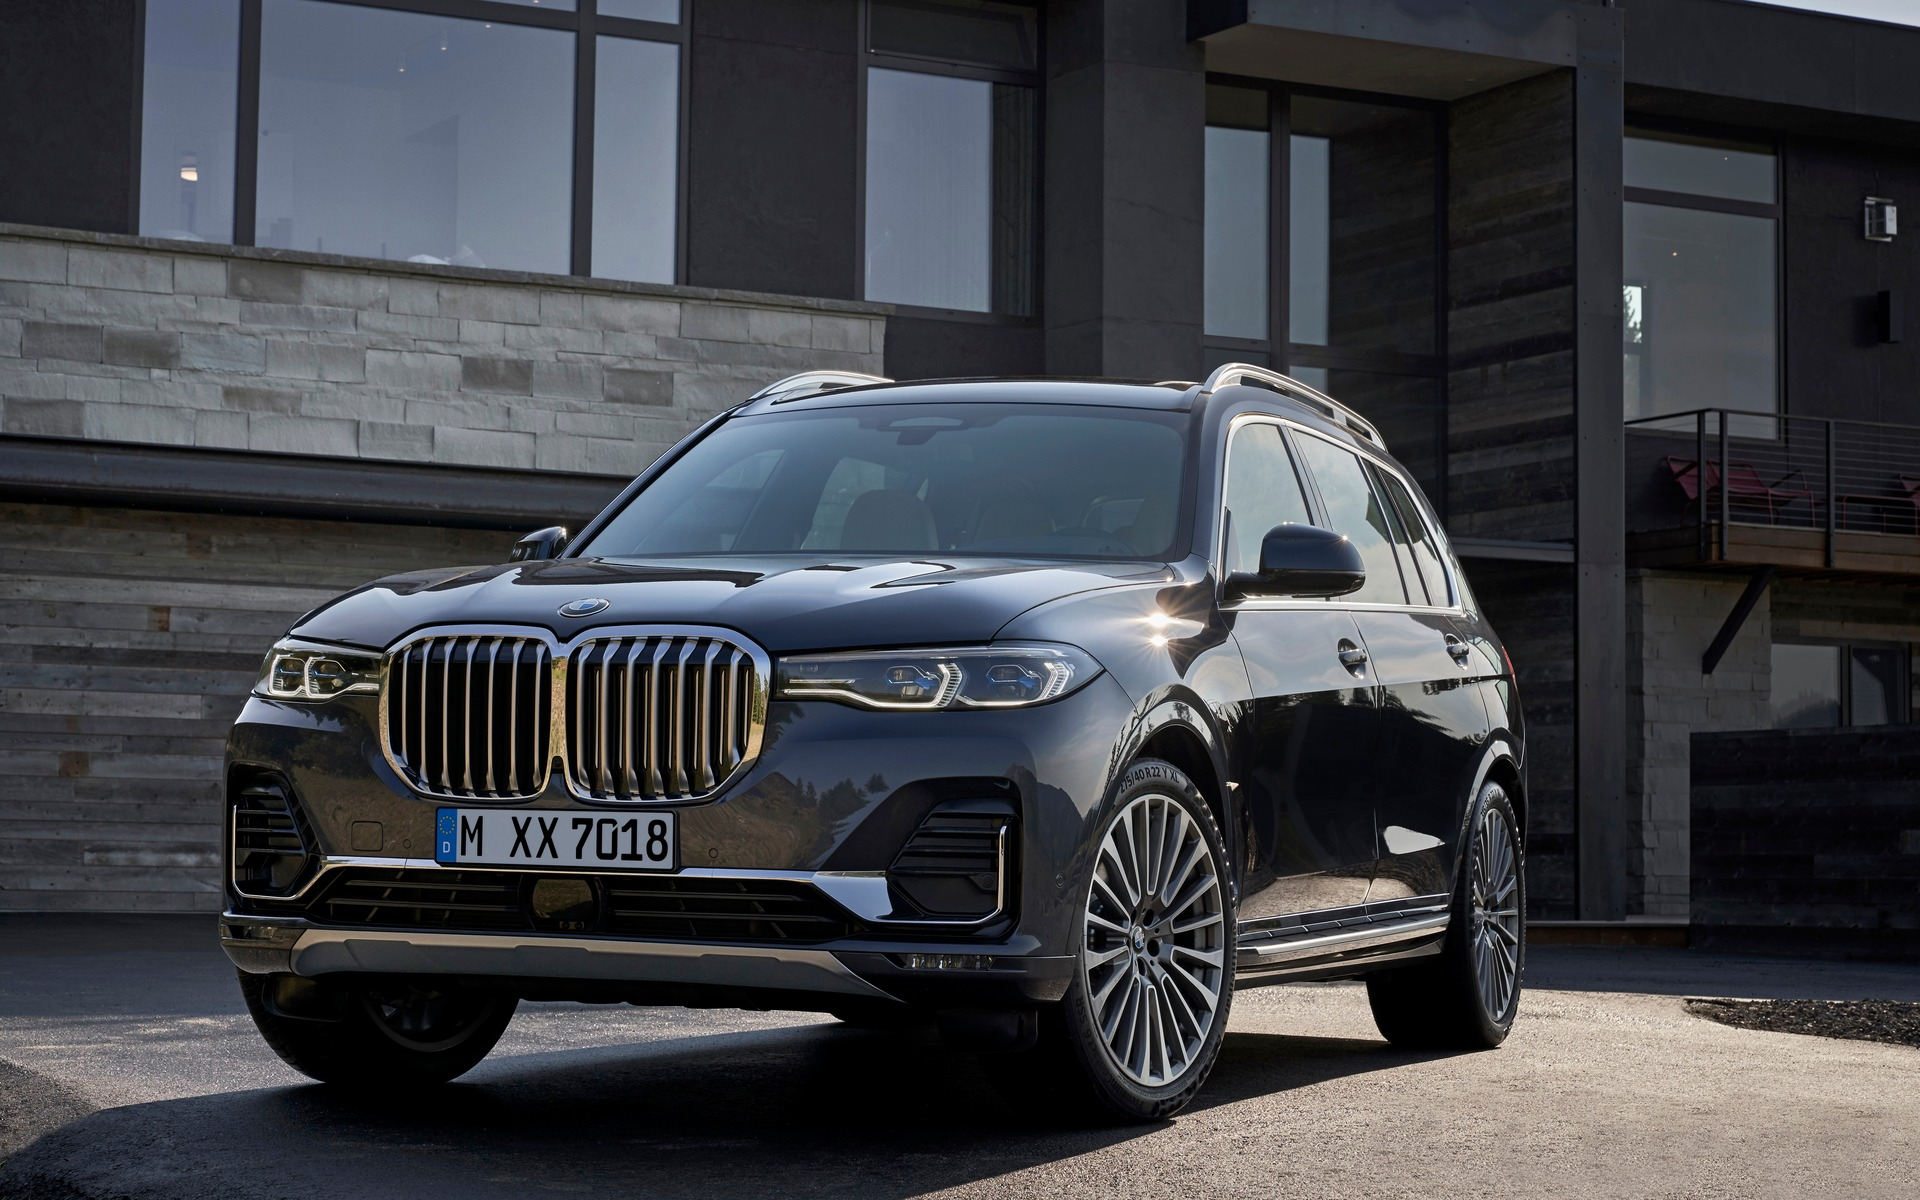 2019 Bmw X7 Officially Unveiled The Car Guide